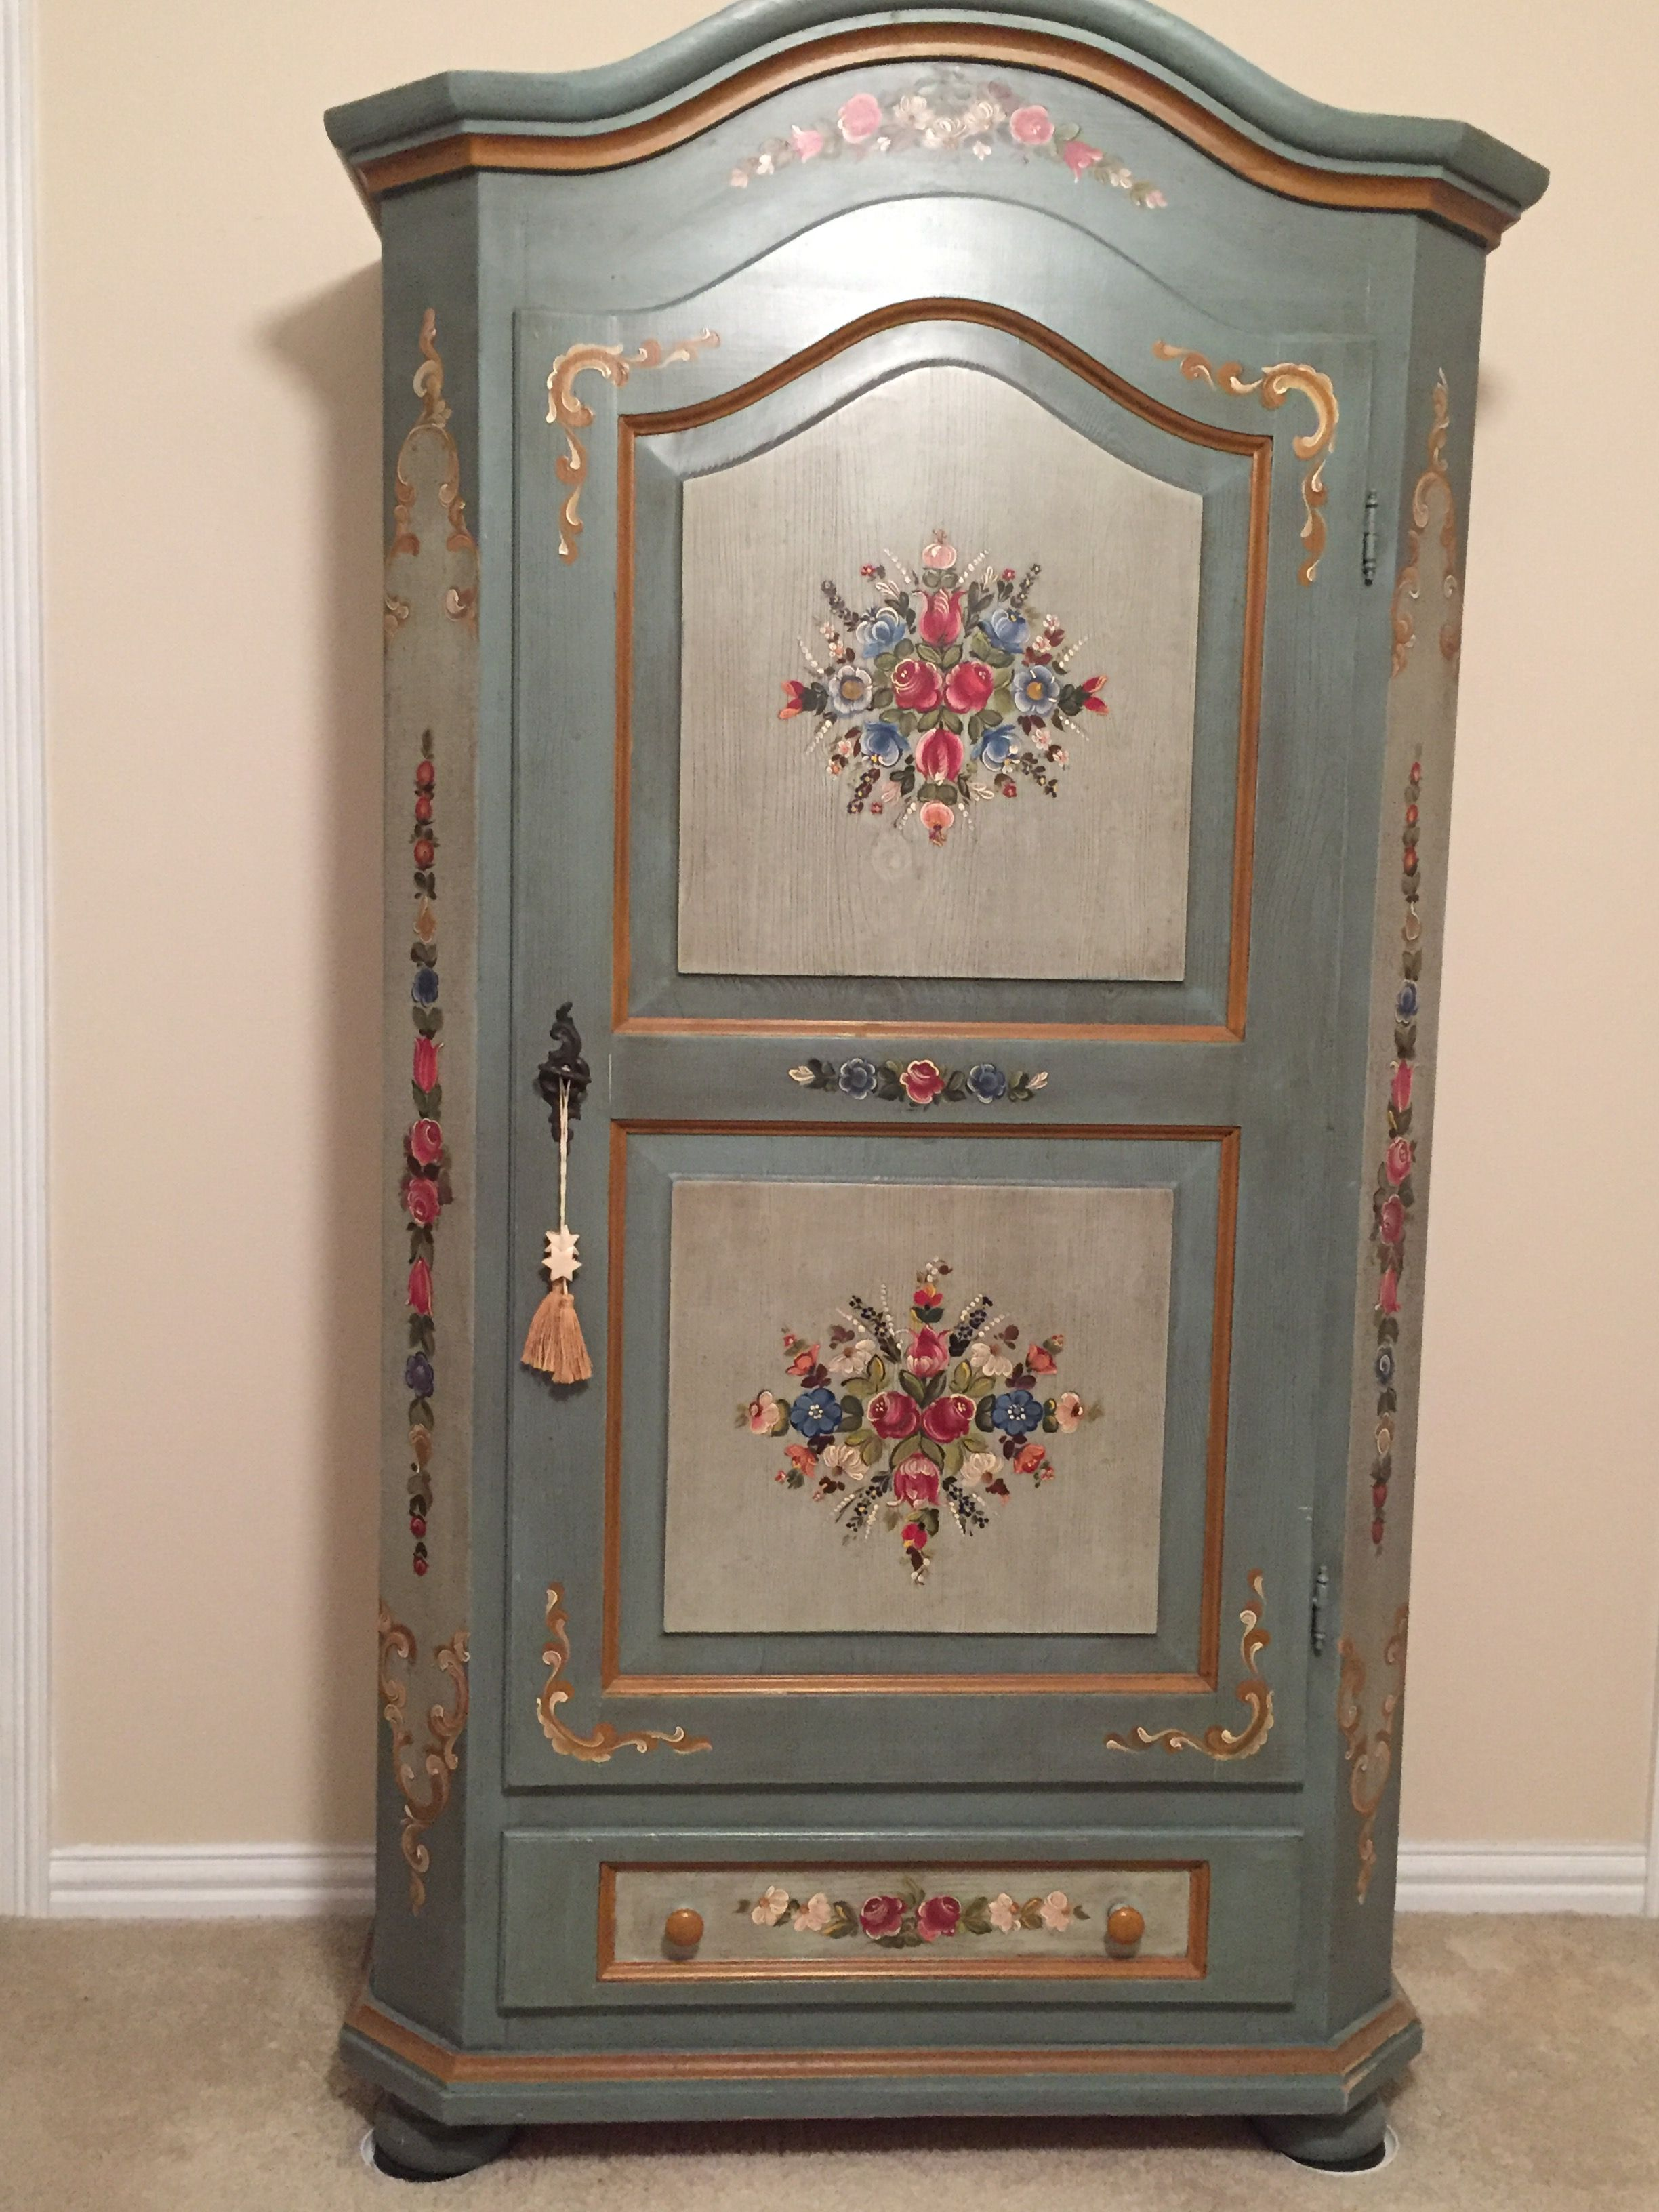 Hand Painted German Schrank Or Armoire Painting Furniture Diy Hand Painted Furniture Revamp Furniture